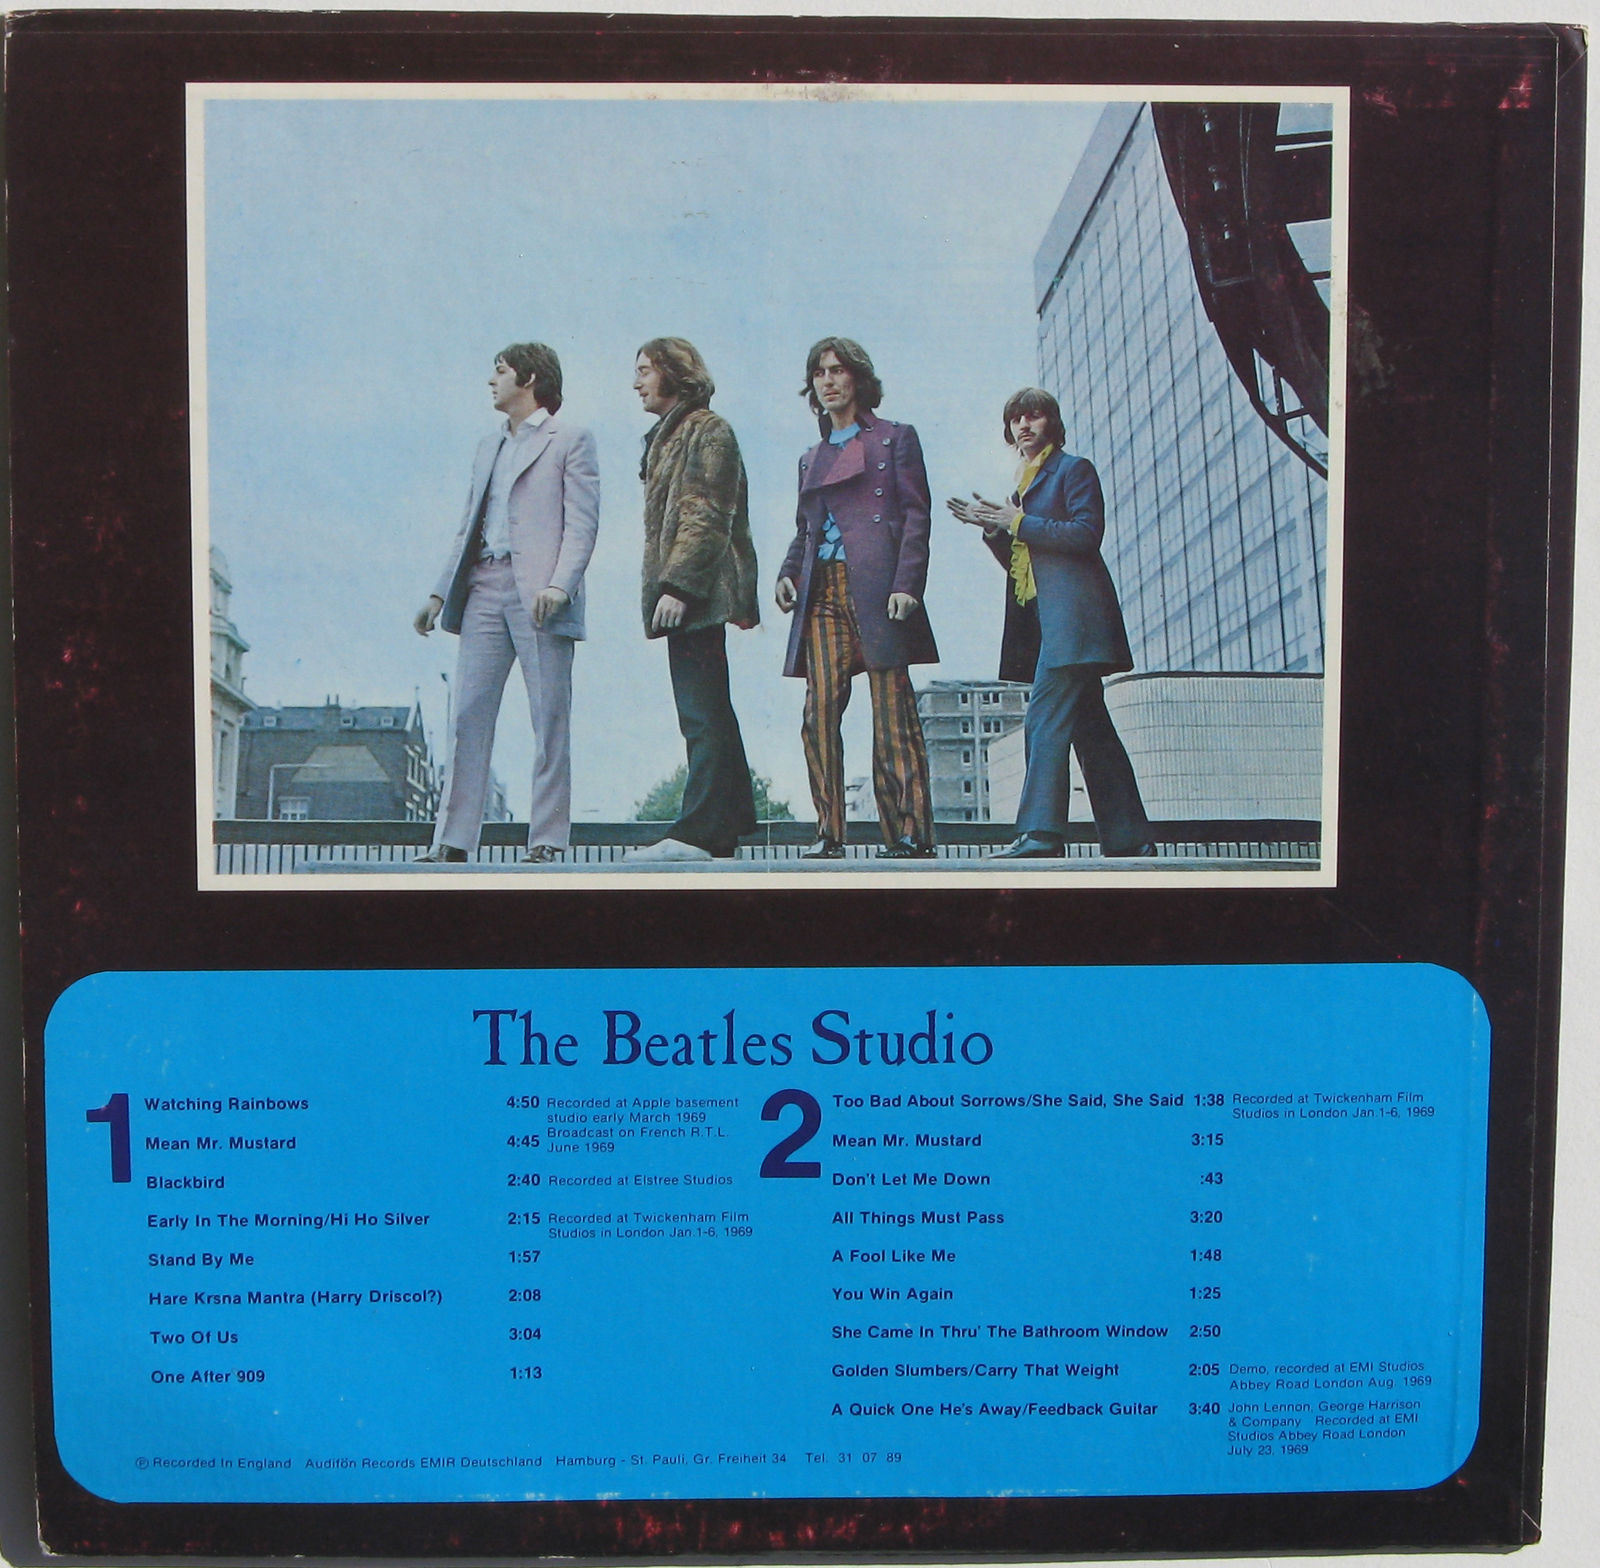 She Came Through The Bathroom Window Lyrics: The 4th 'wave' Of Beatles Get Back Sessions Outtakes